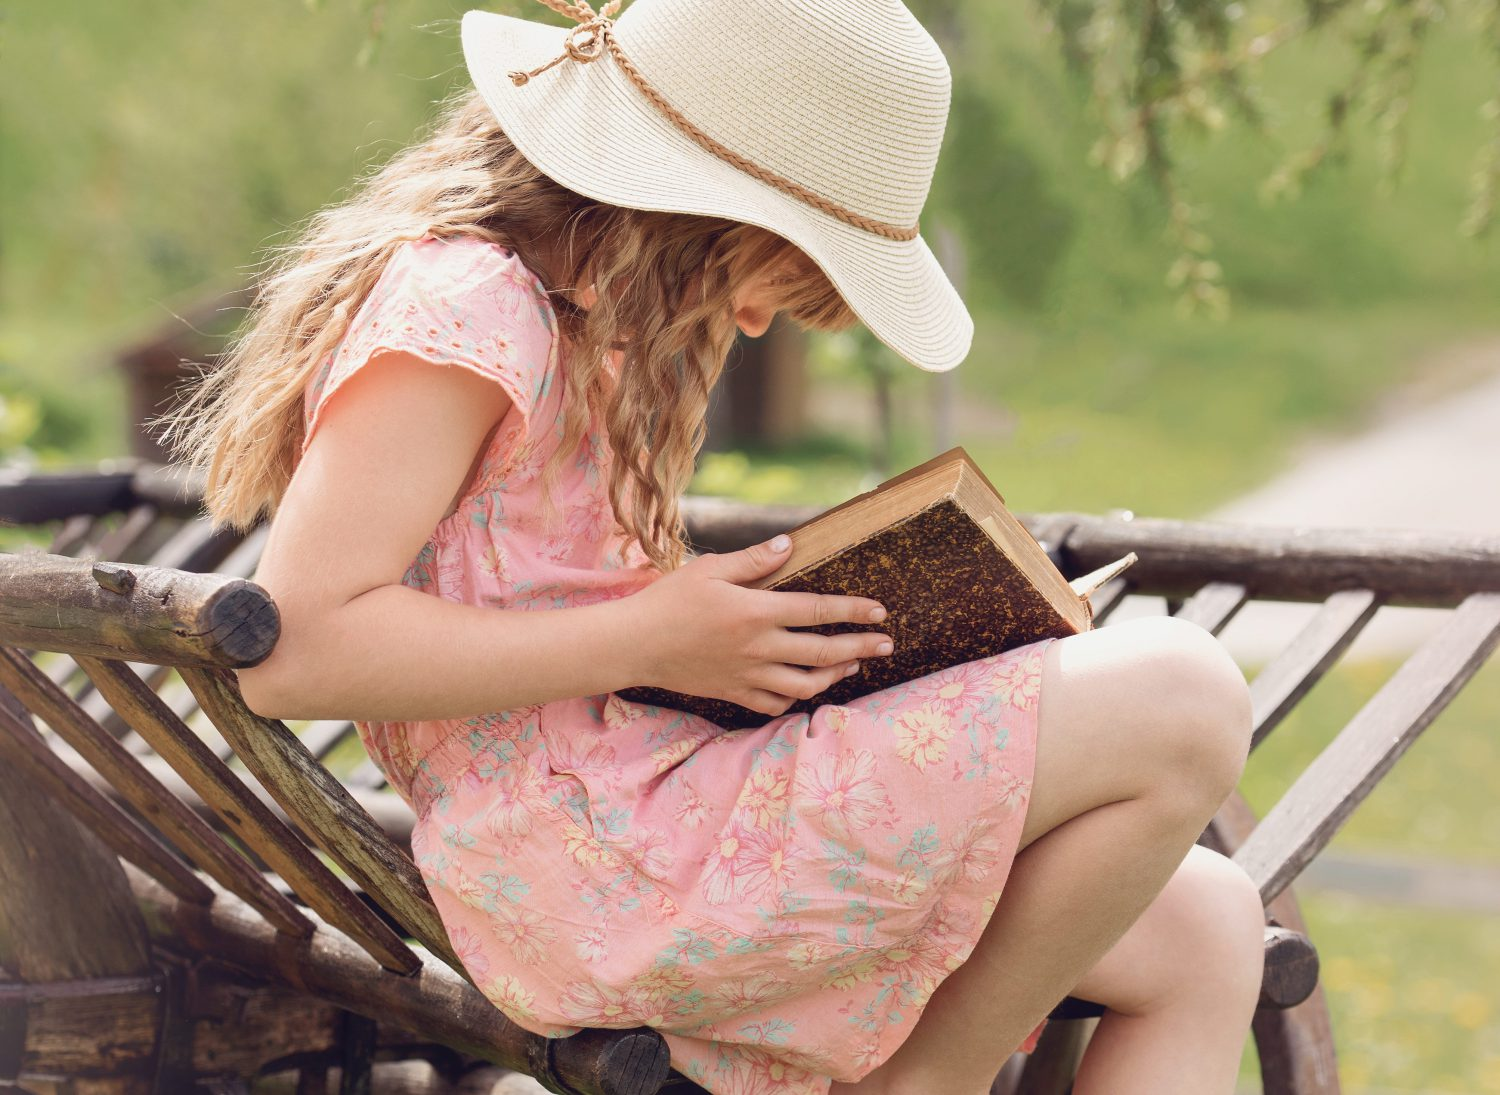 Child reading a book in garden